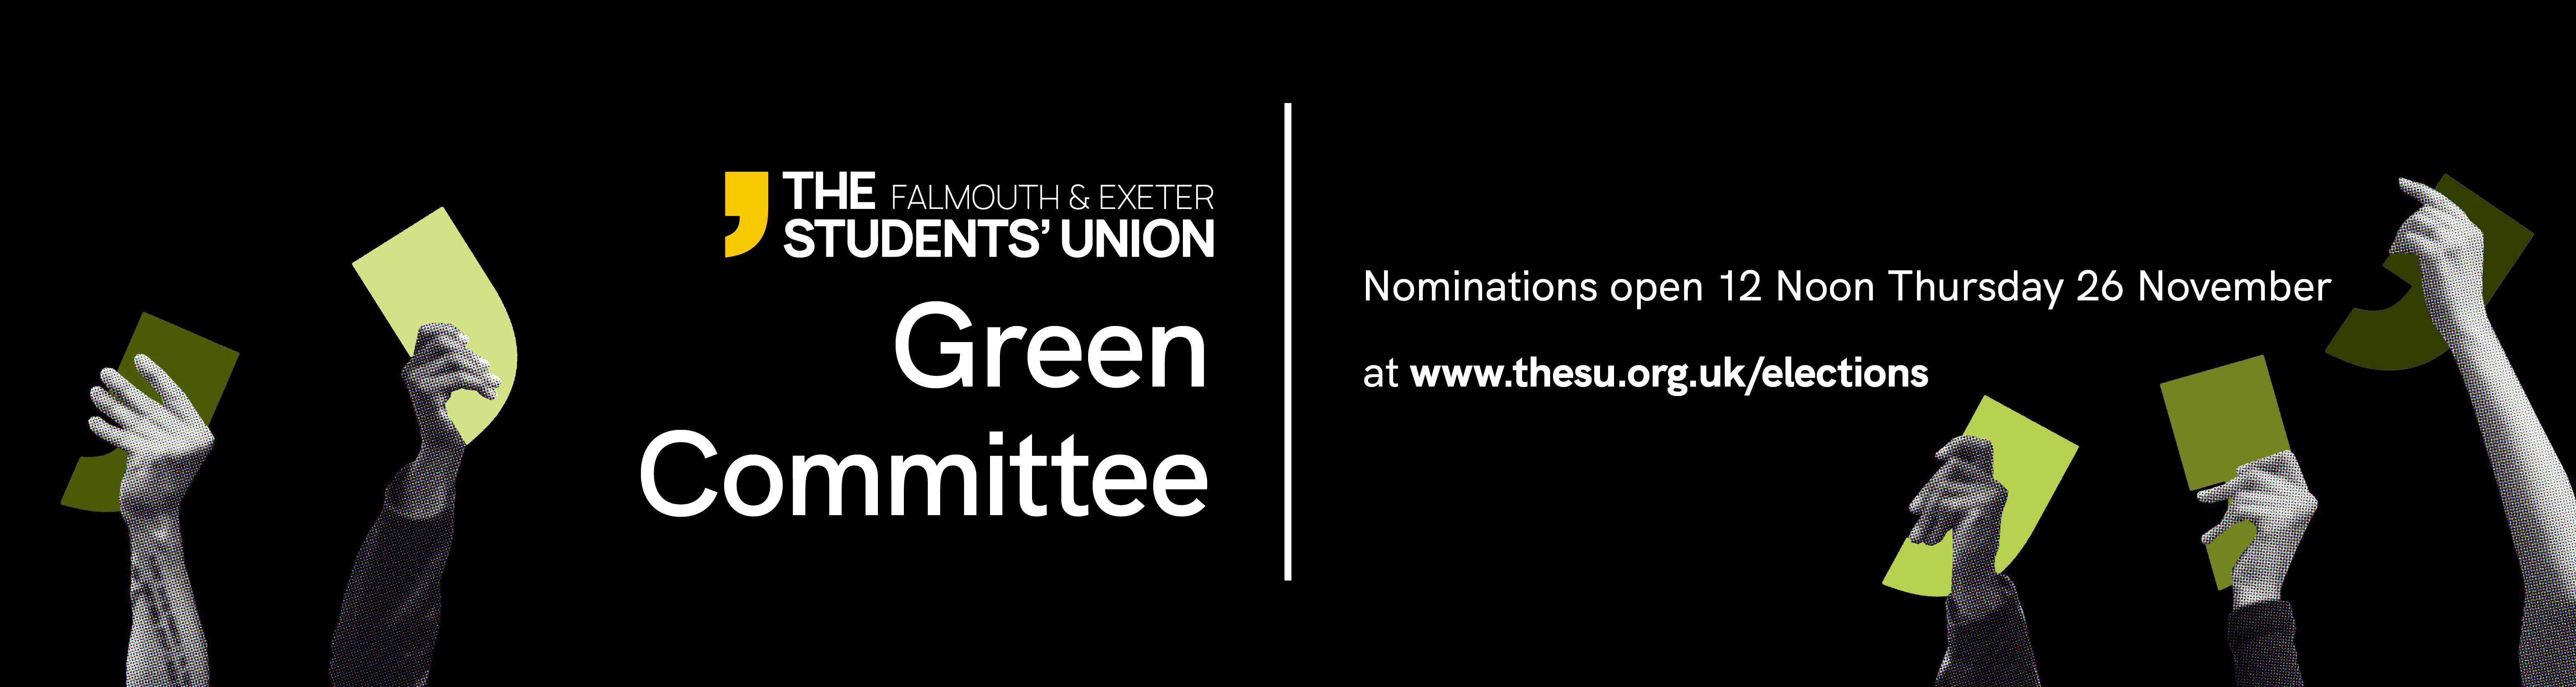 Green Committee Elections - nominations open 12 noon Thursday 26 November